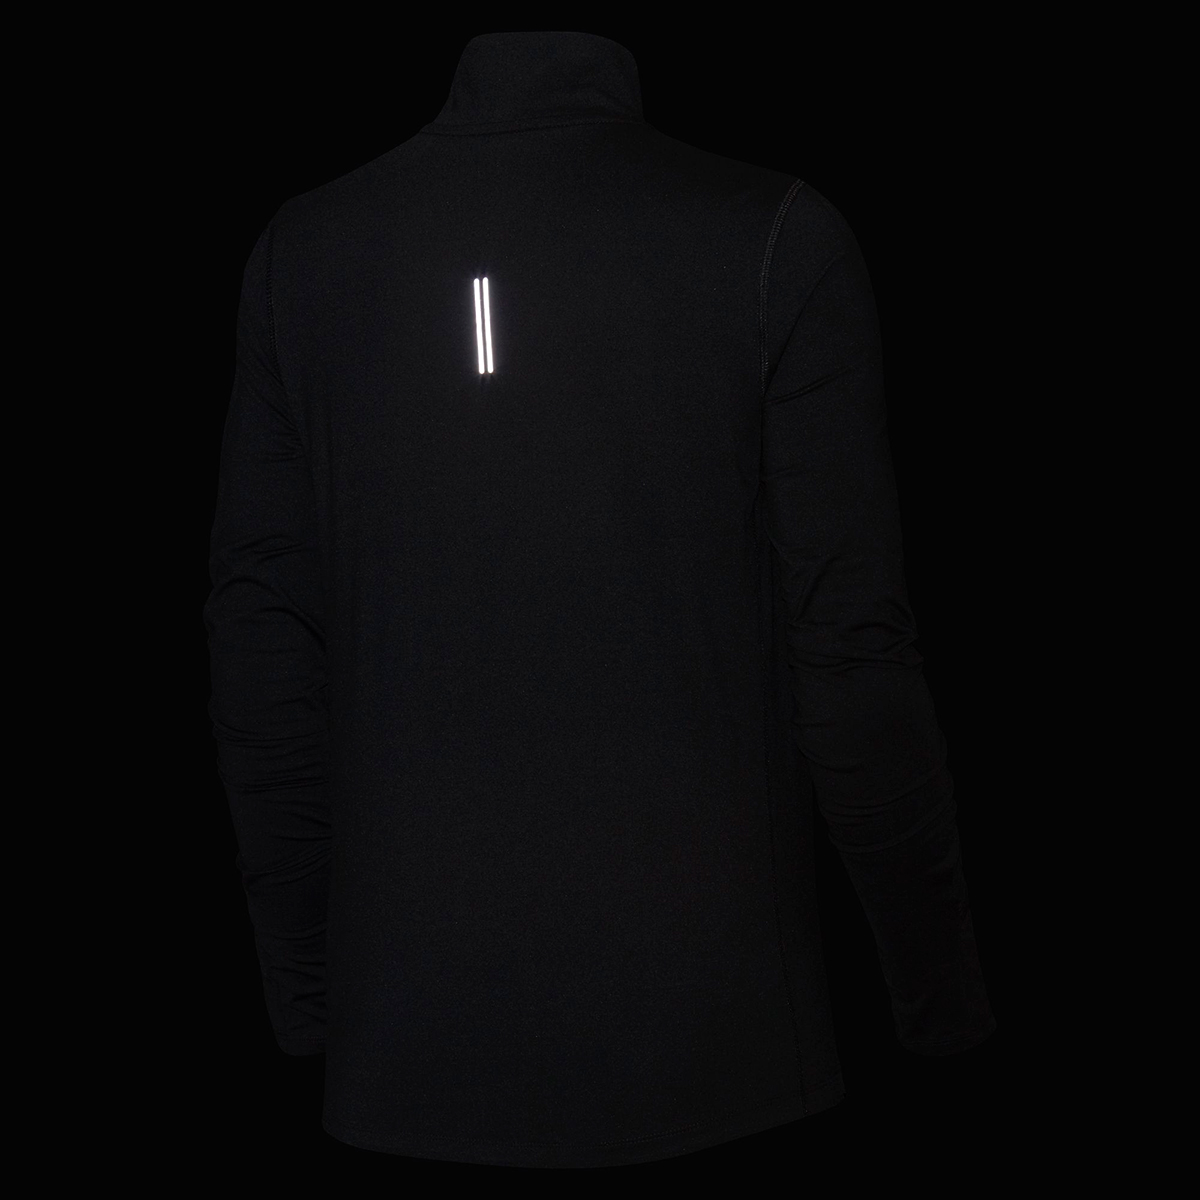 Women's Nike Element 1/2-Zip Running Top - Color: Black - Size: S, Black, large, image 3